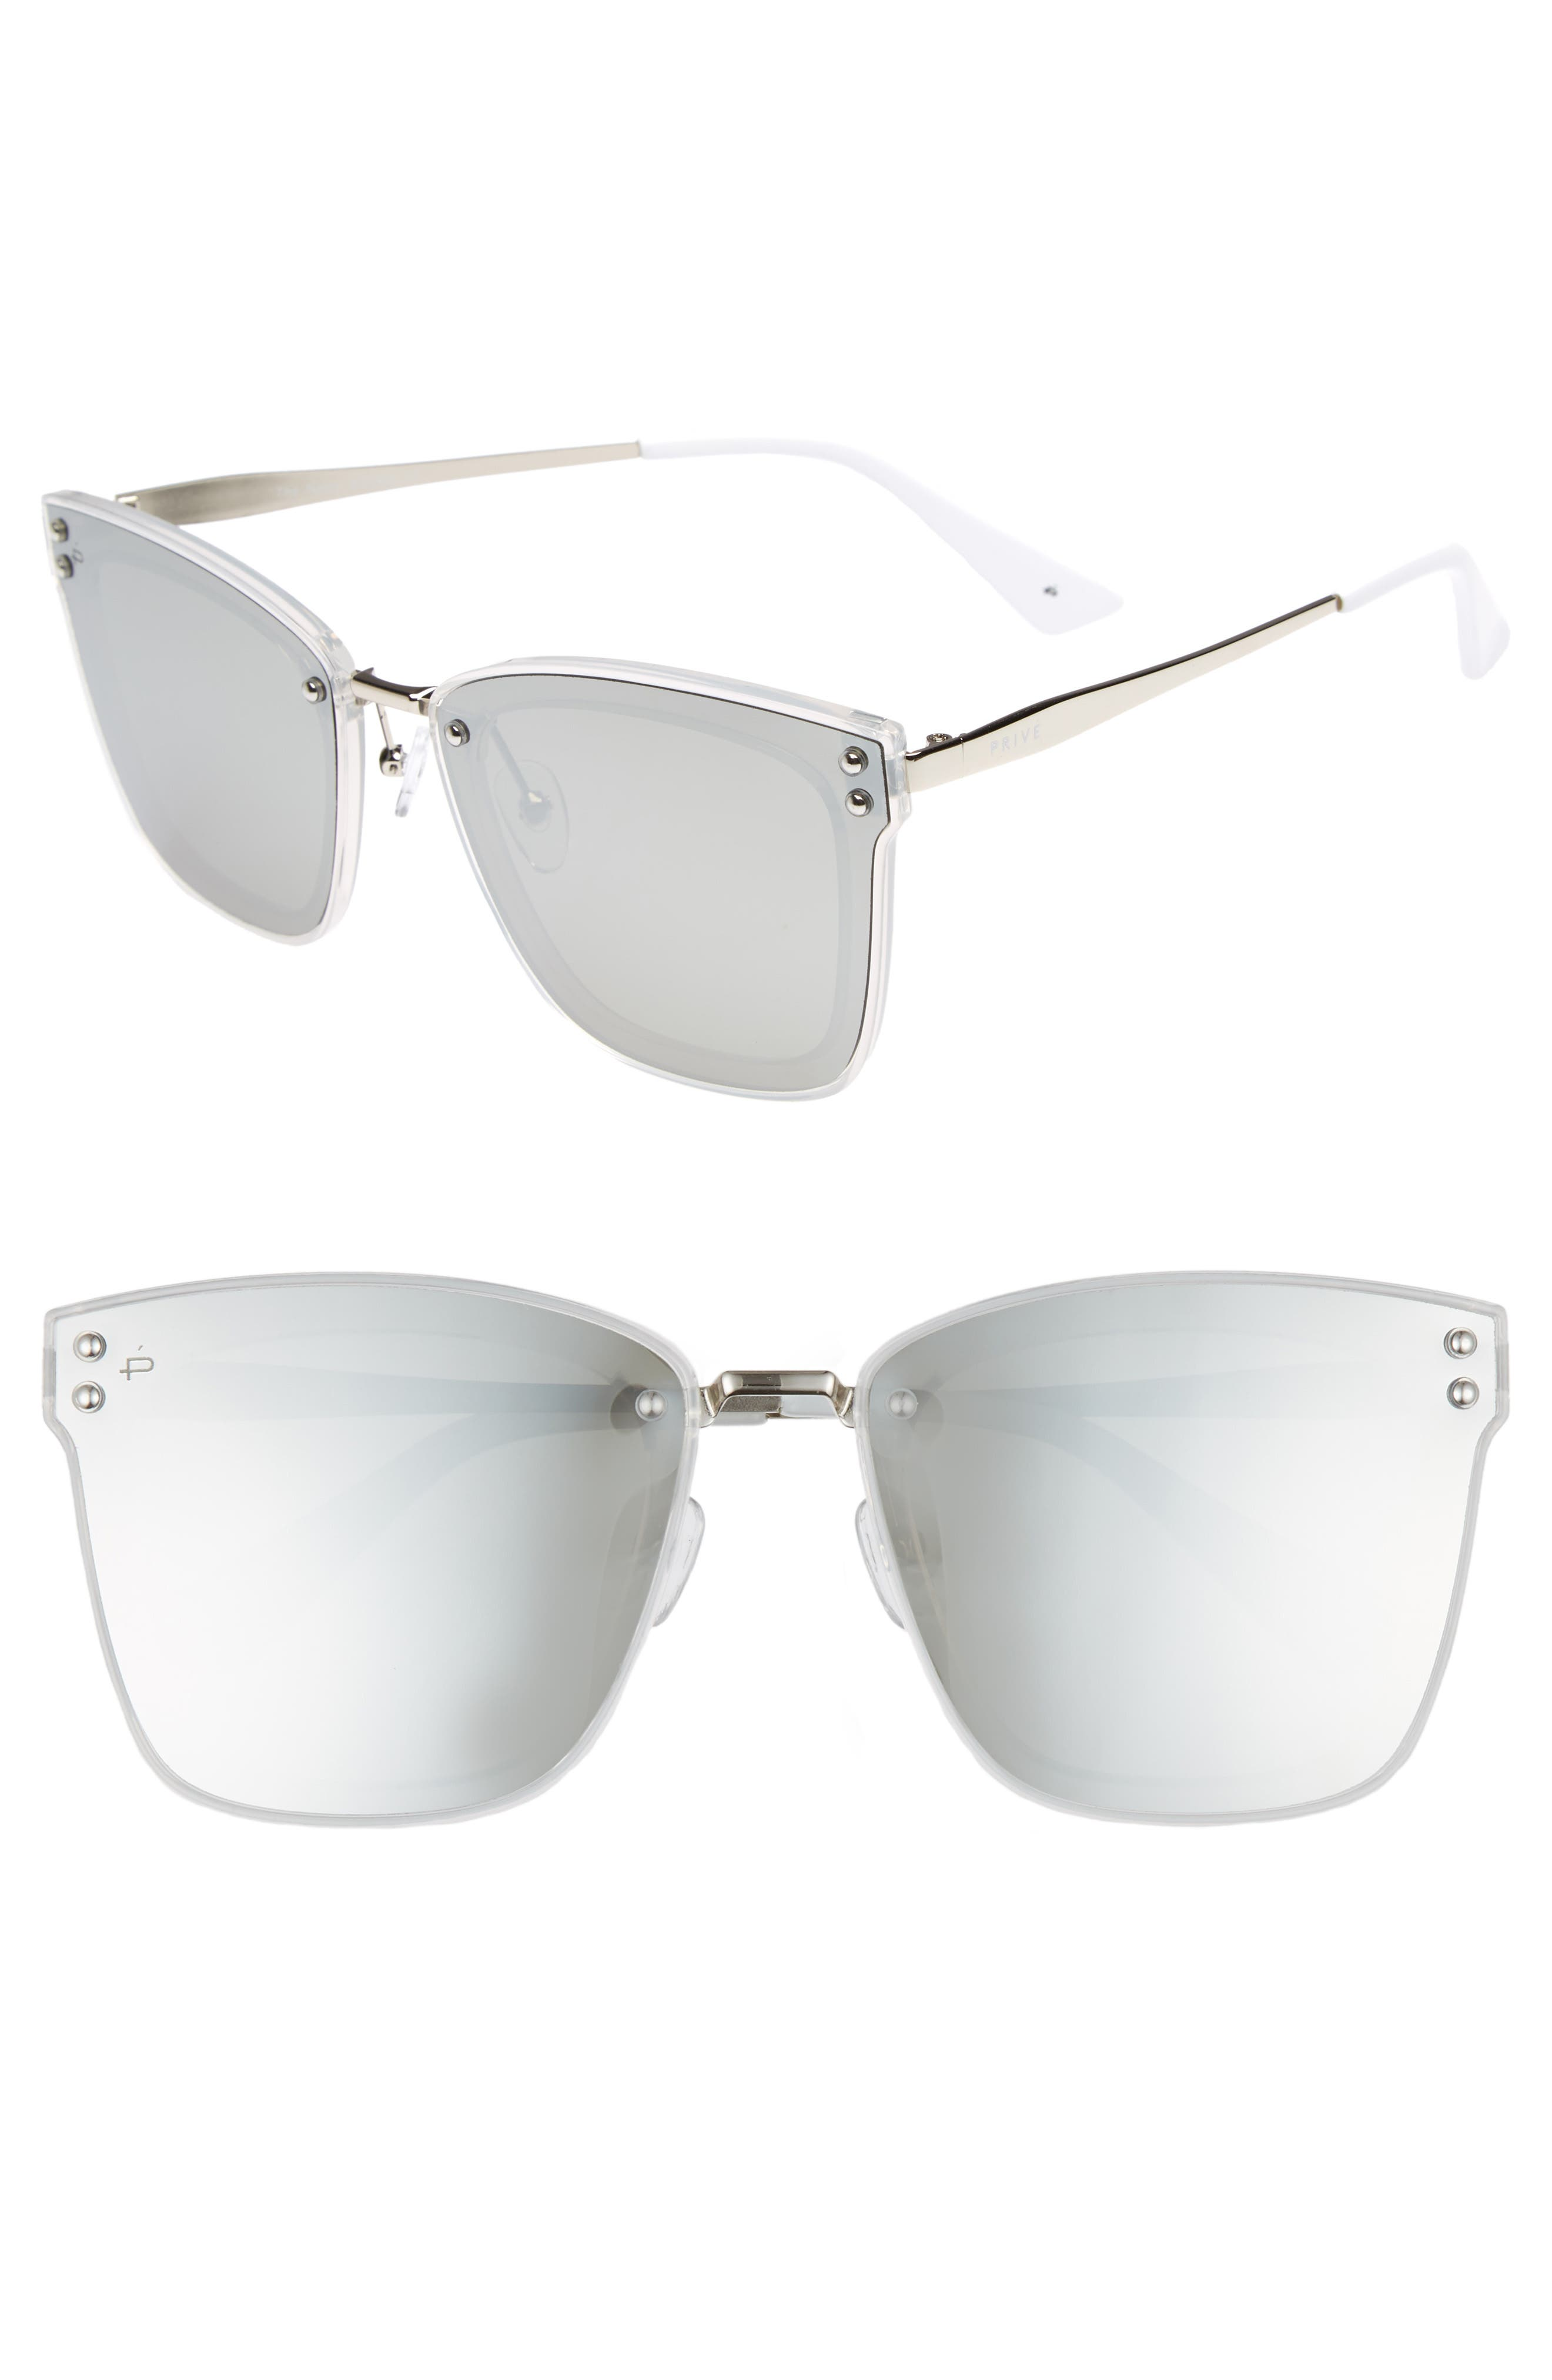 Privé Revaux The Nasty Woman 50mm Square Sunglasses